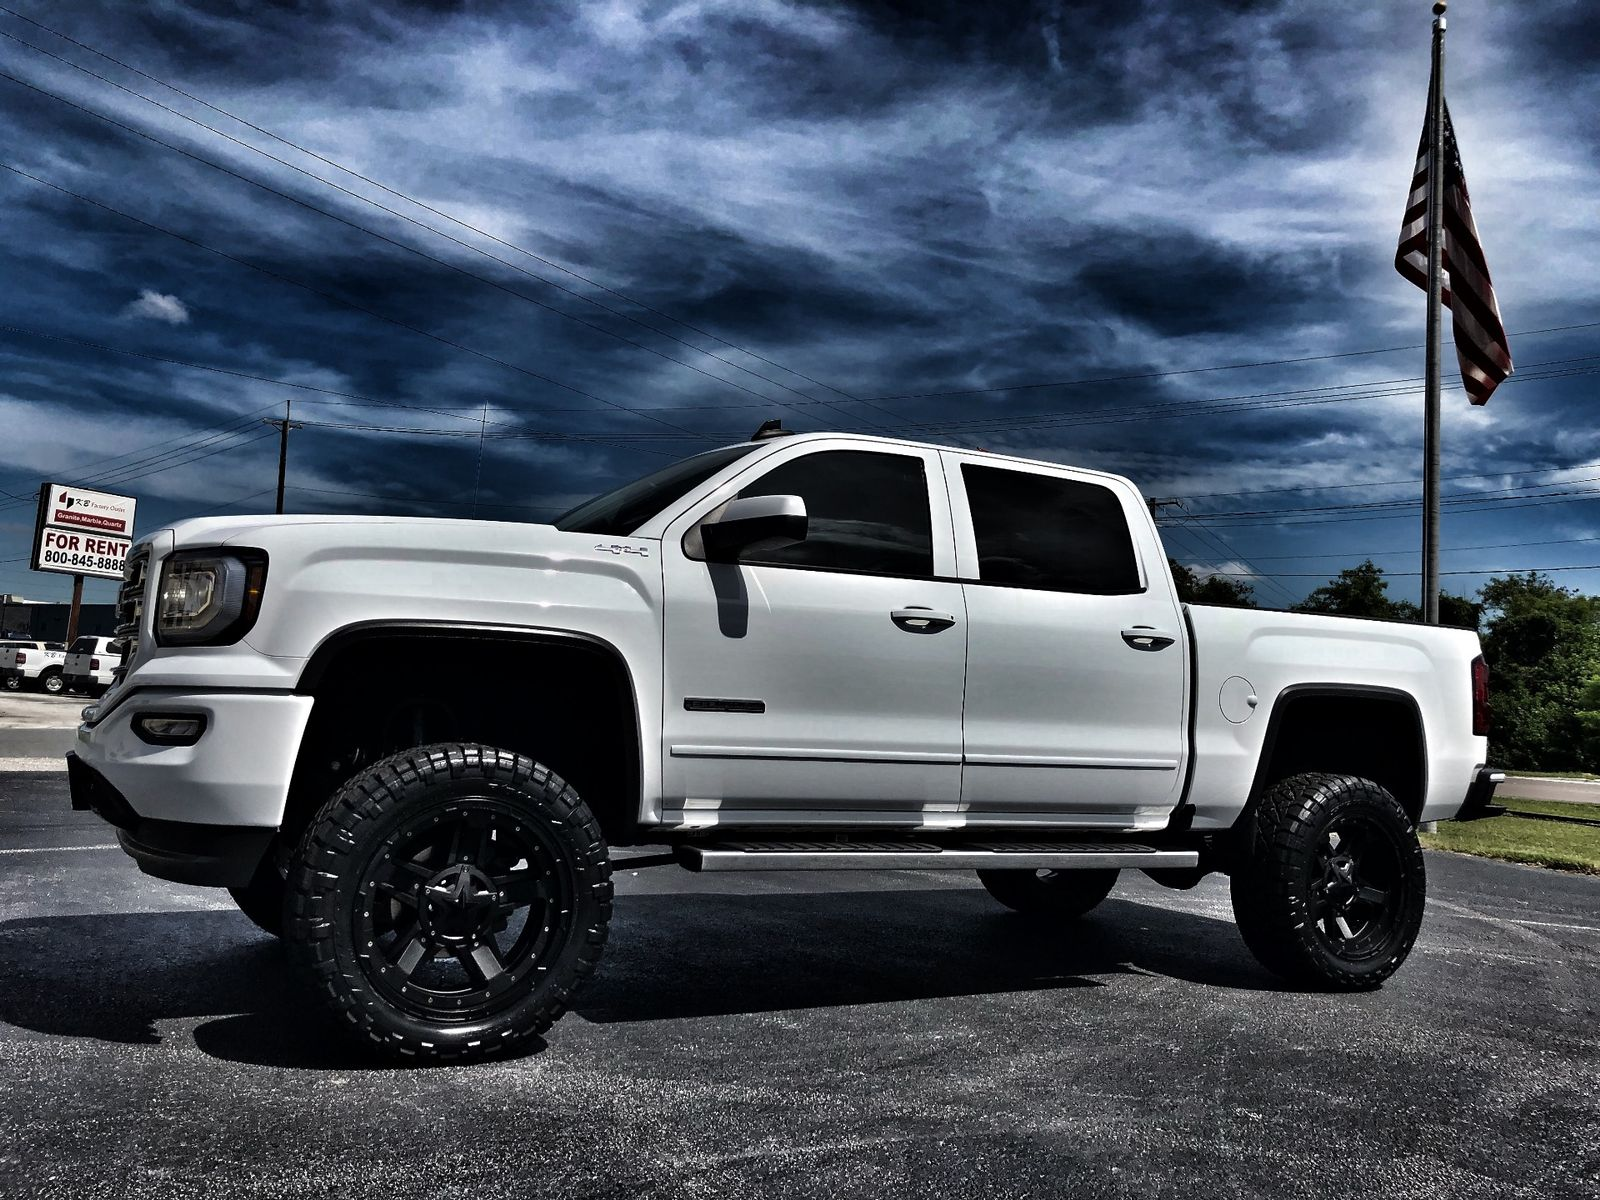 custom lift 2016 GMC Sierra 1500 SLE All Terrain crew cab ... |Lifted Gmc Sierra